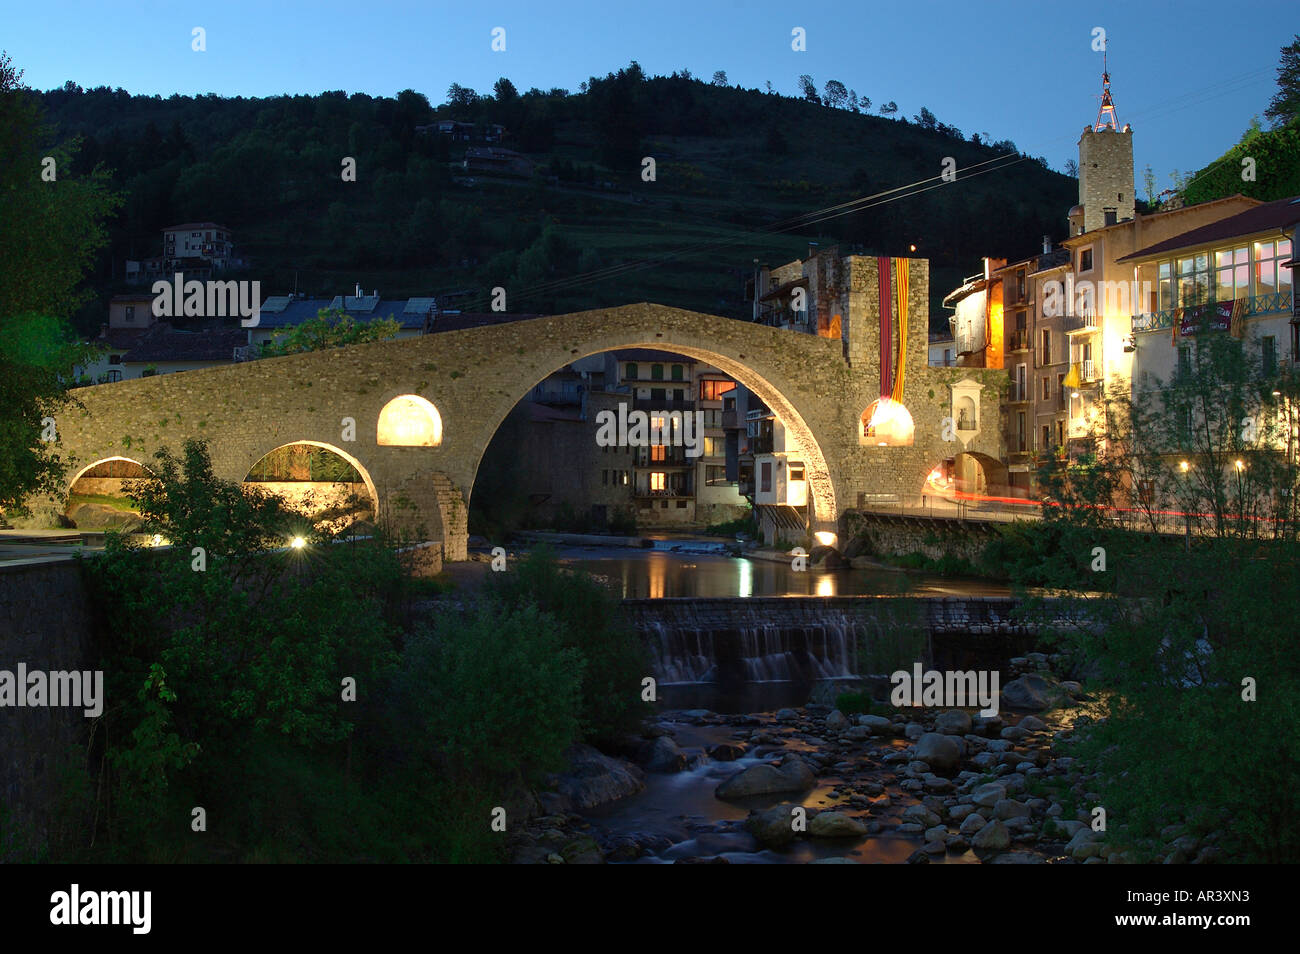 Pont Nou 12th century and Ter River Camprodon, Ripolles. Girona province . Catalonia. Spain - Stock Image